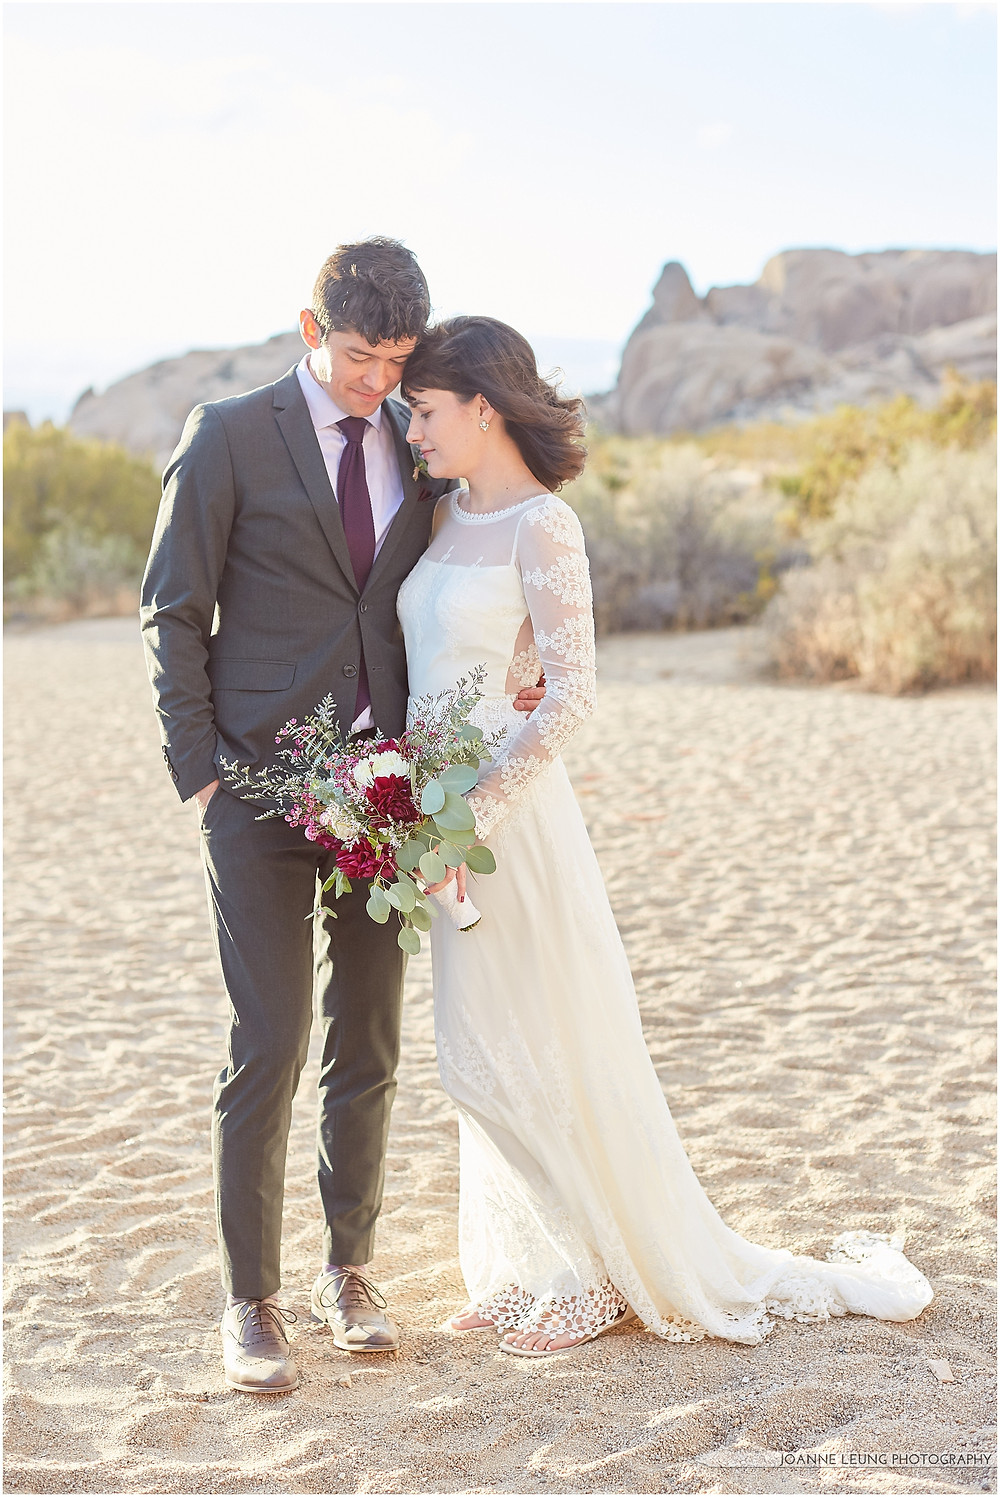 Joshua Tree Live Oak Wedding untraditional ceremony romantic porttrait